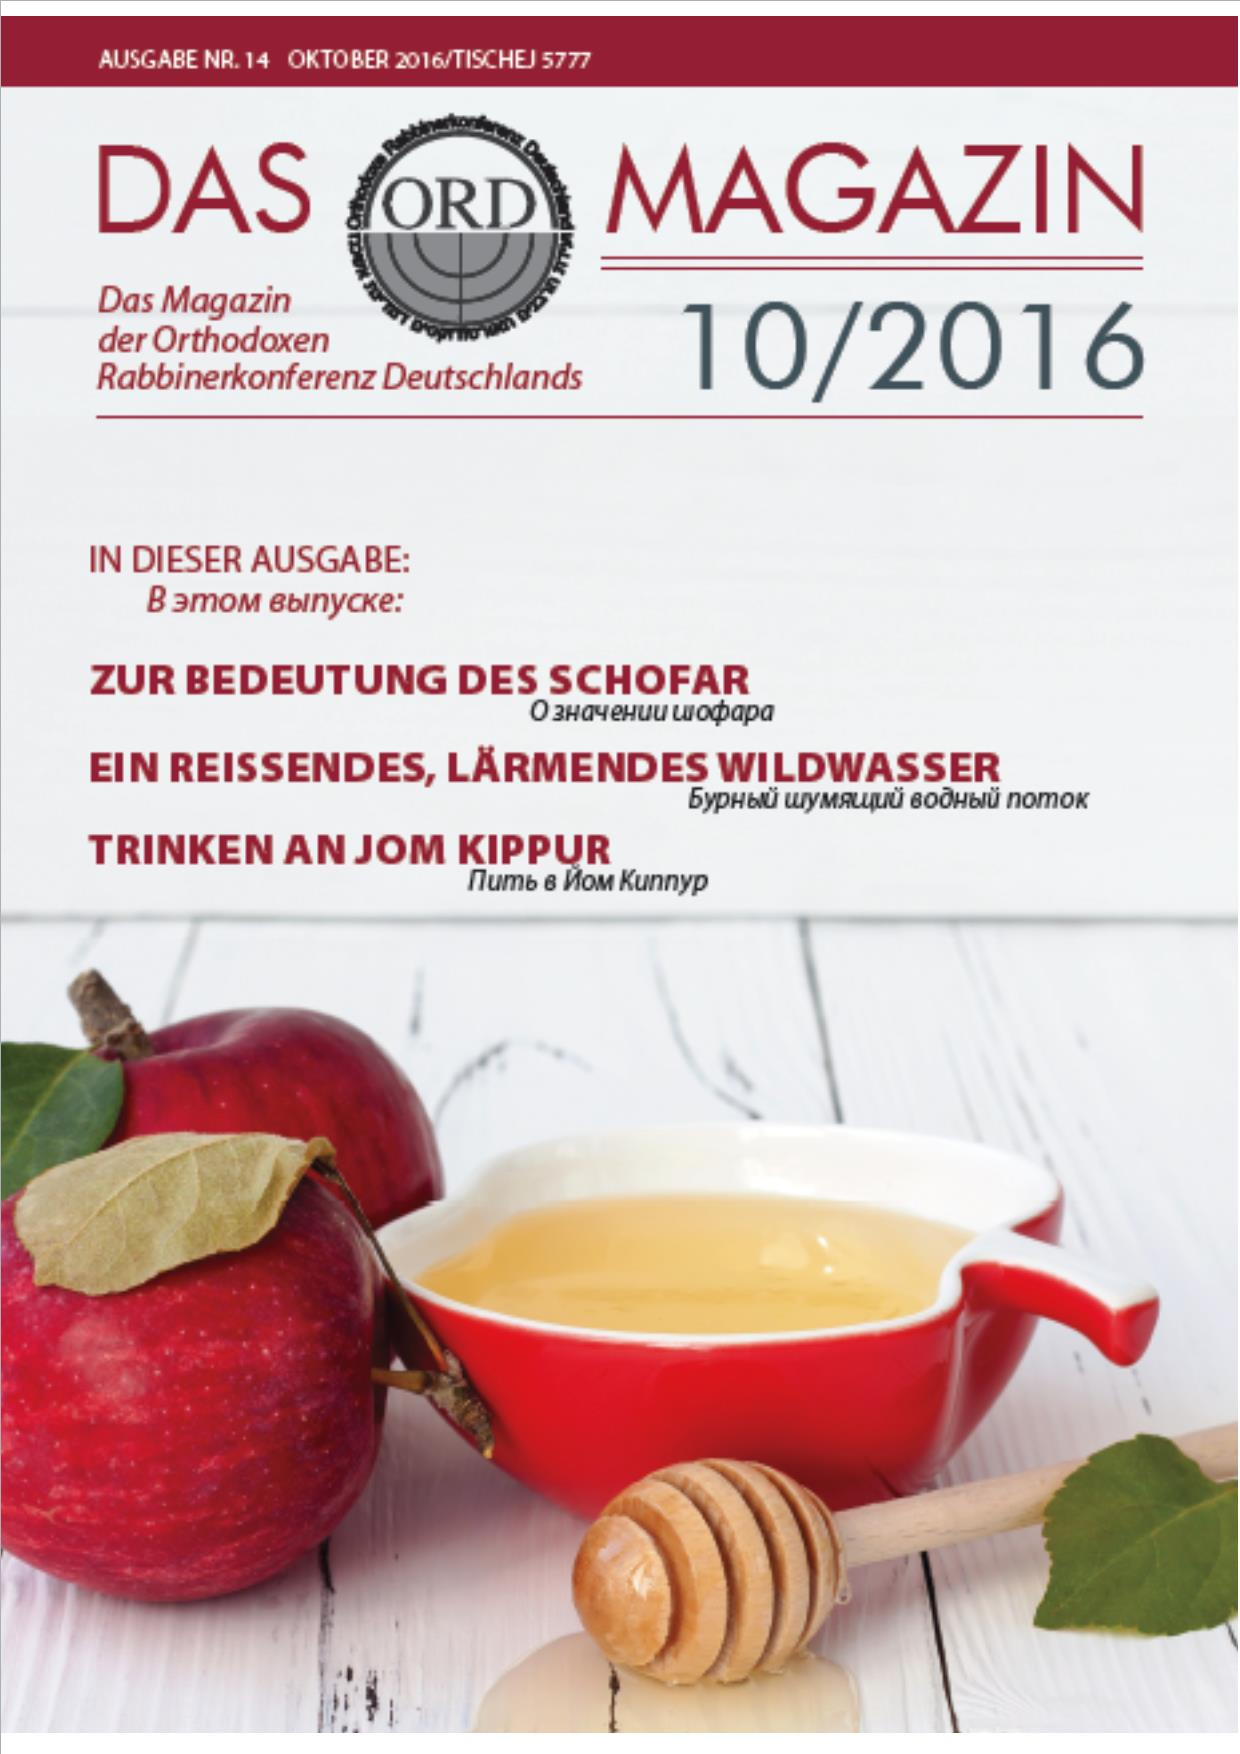 ORD Magazin 10/2016 Cover